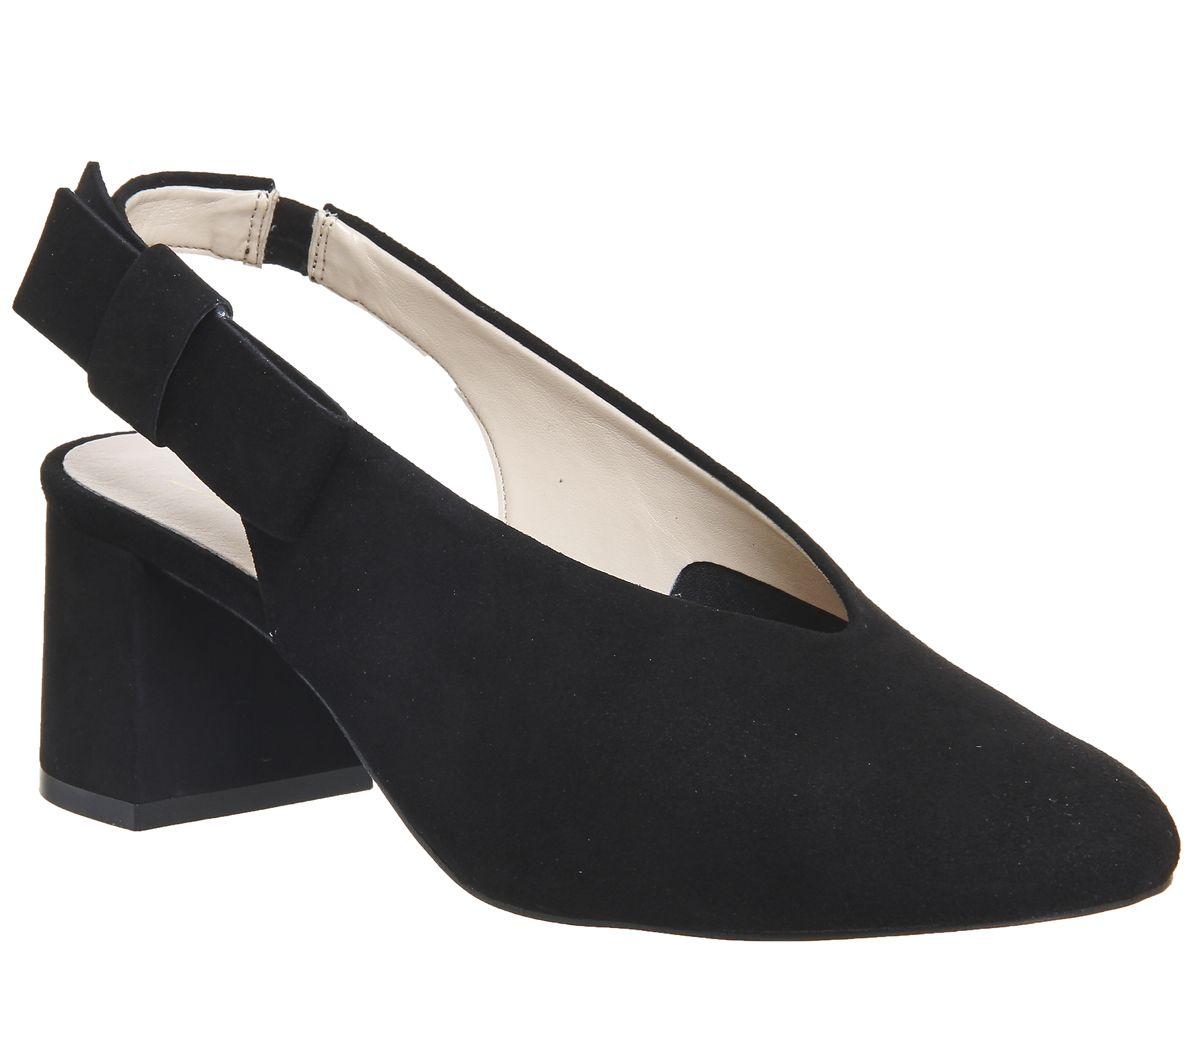 Womens-Office-Magical-Bow-Slingback-Heels-Black-Suede-Heels thumbnail 4